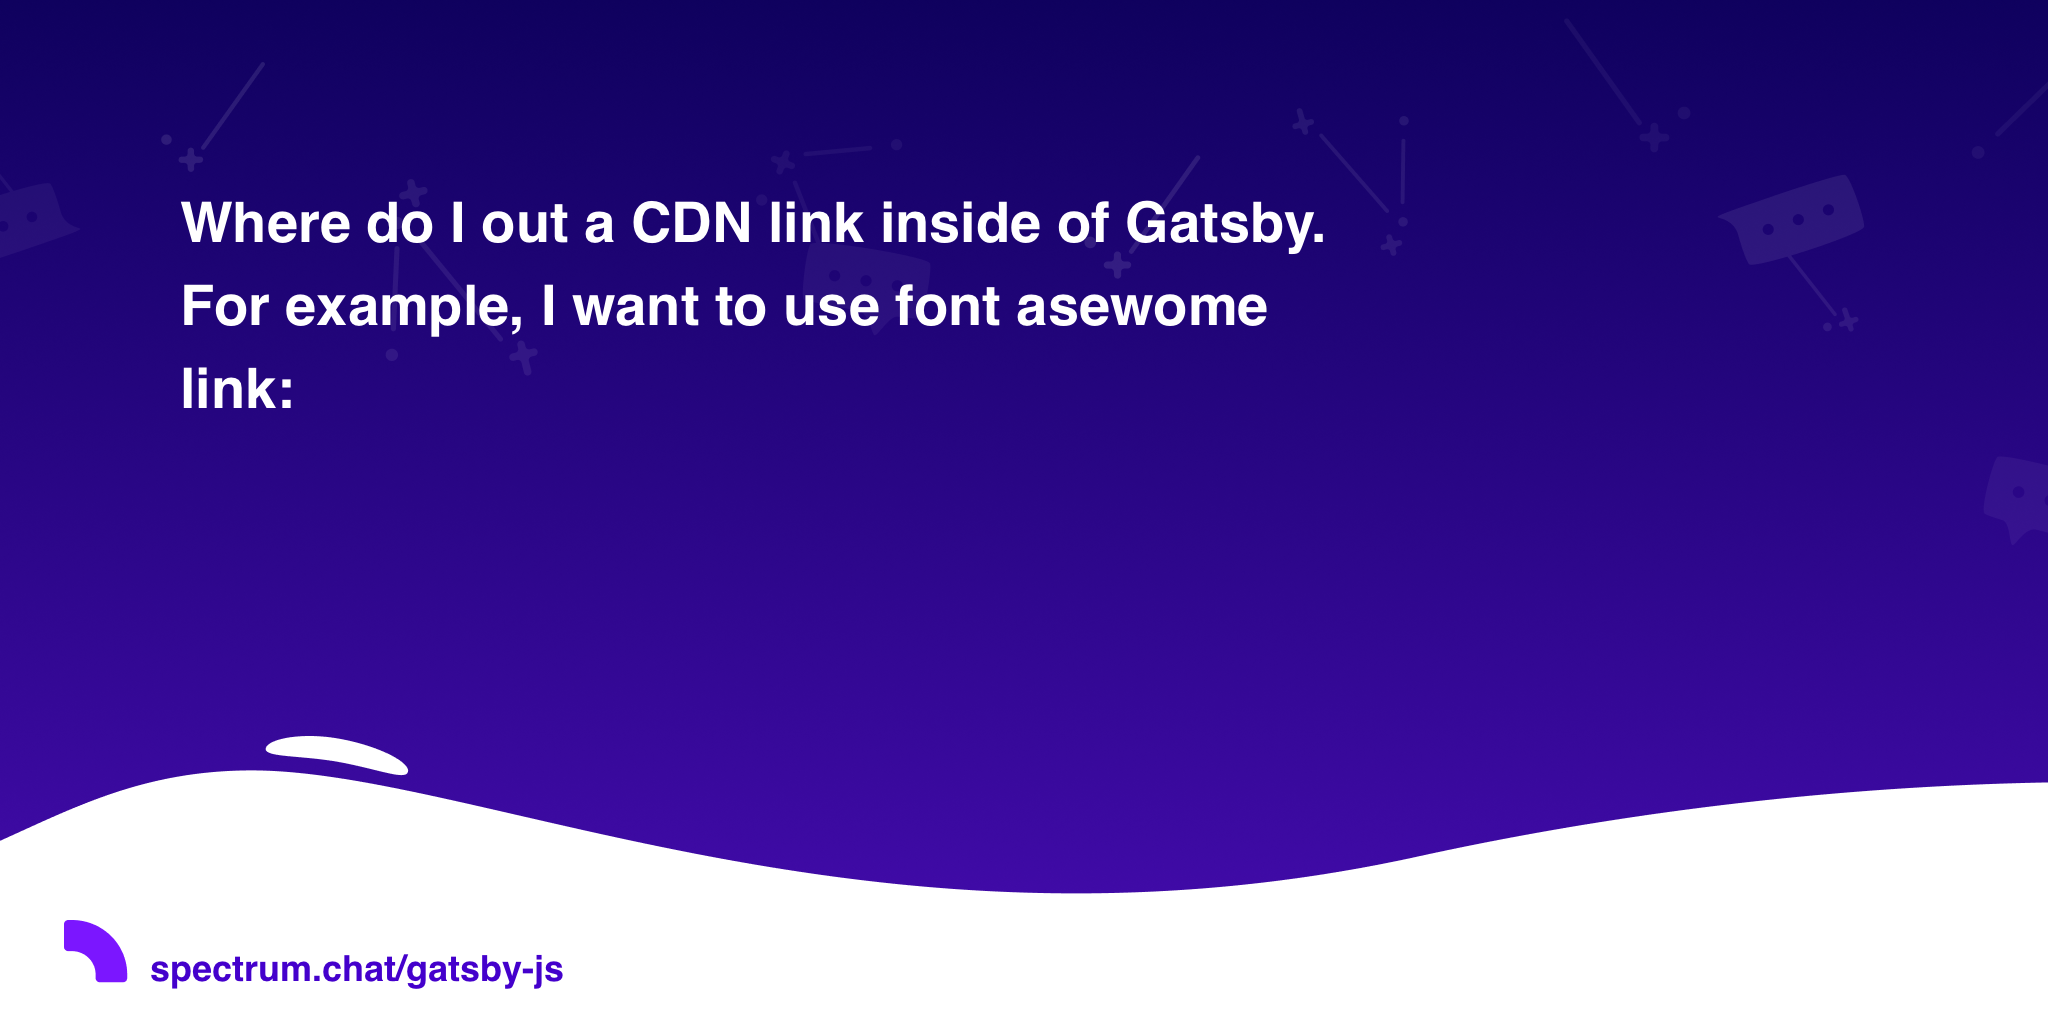 Where do I out a CDN link inside of Gatsby  For example, I